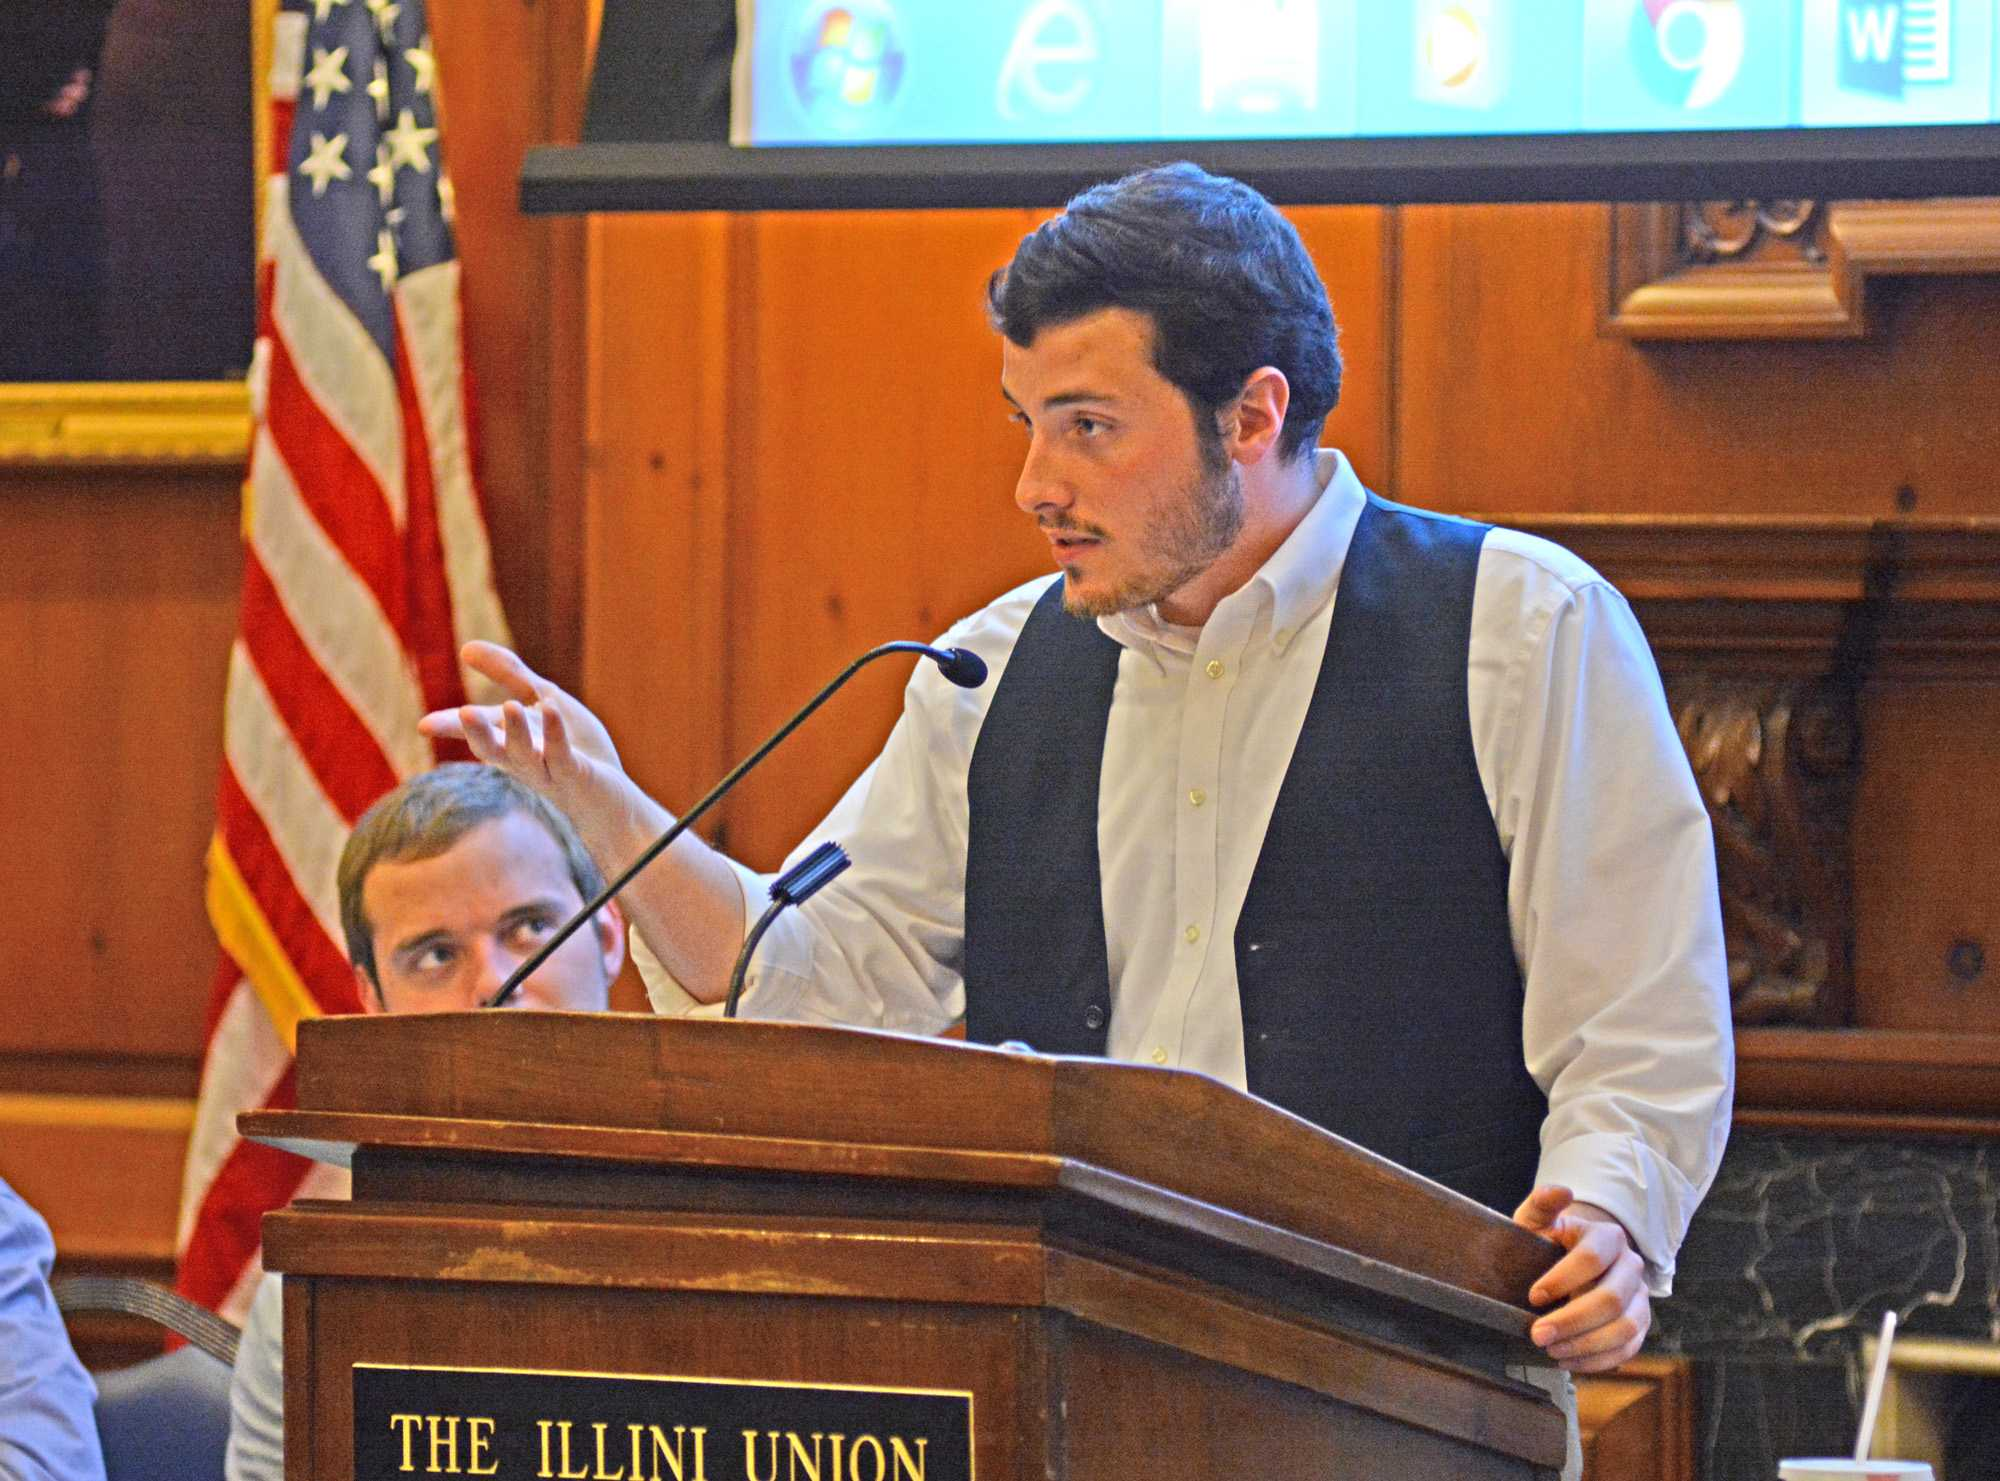 Alex Villanueva opens up the ISS meeting by speaking about the importance of veterans day in the Pine Lounge at the Illini Union on Nov. 11, 2015.